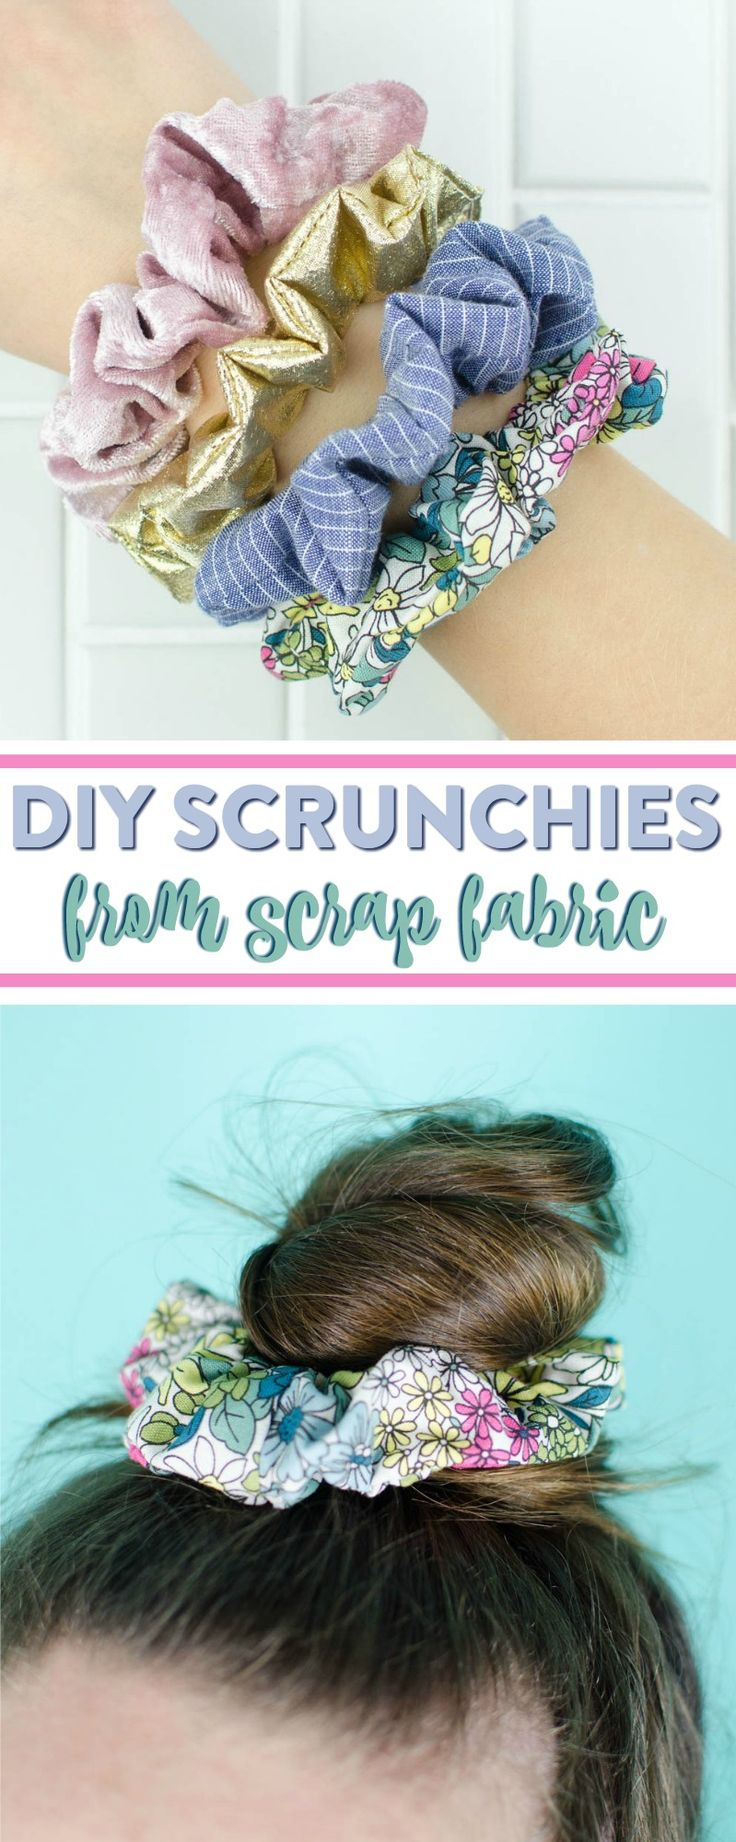 I am so excited to share today's easy sewing project with you.  SCRUNCHIES ARE...